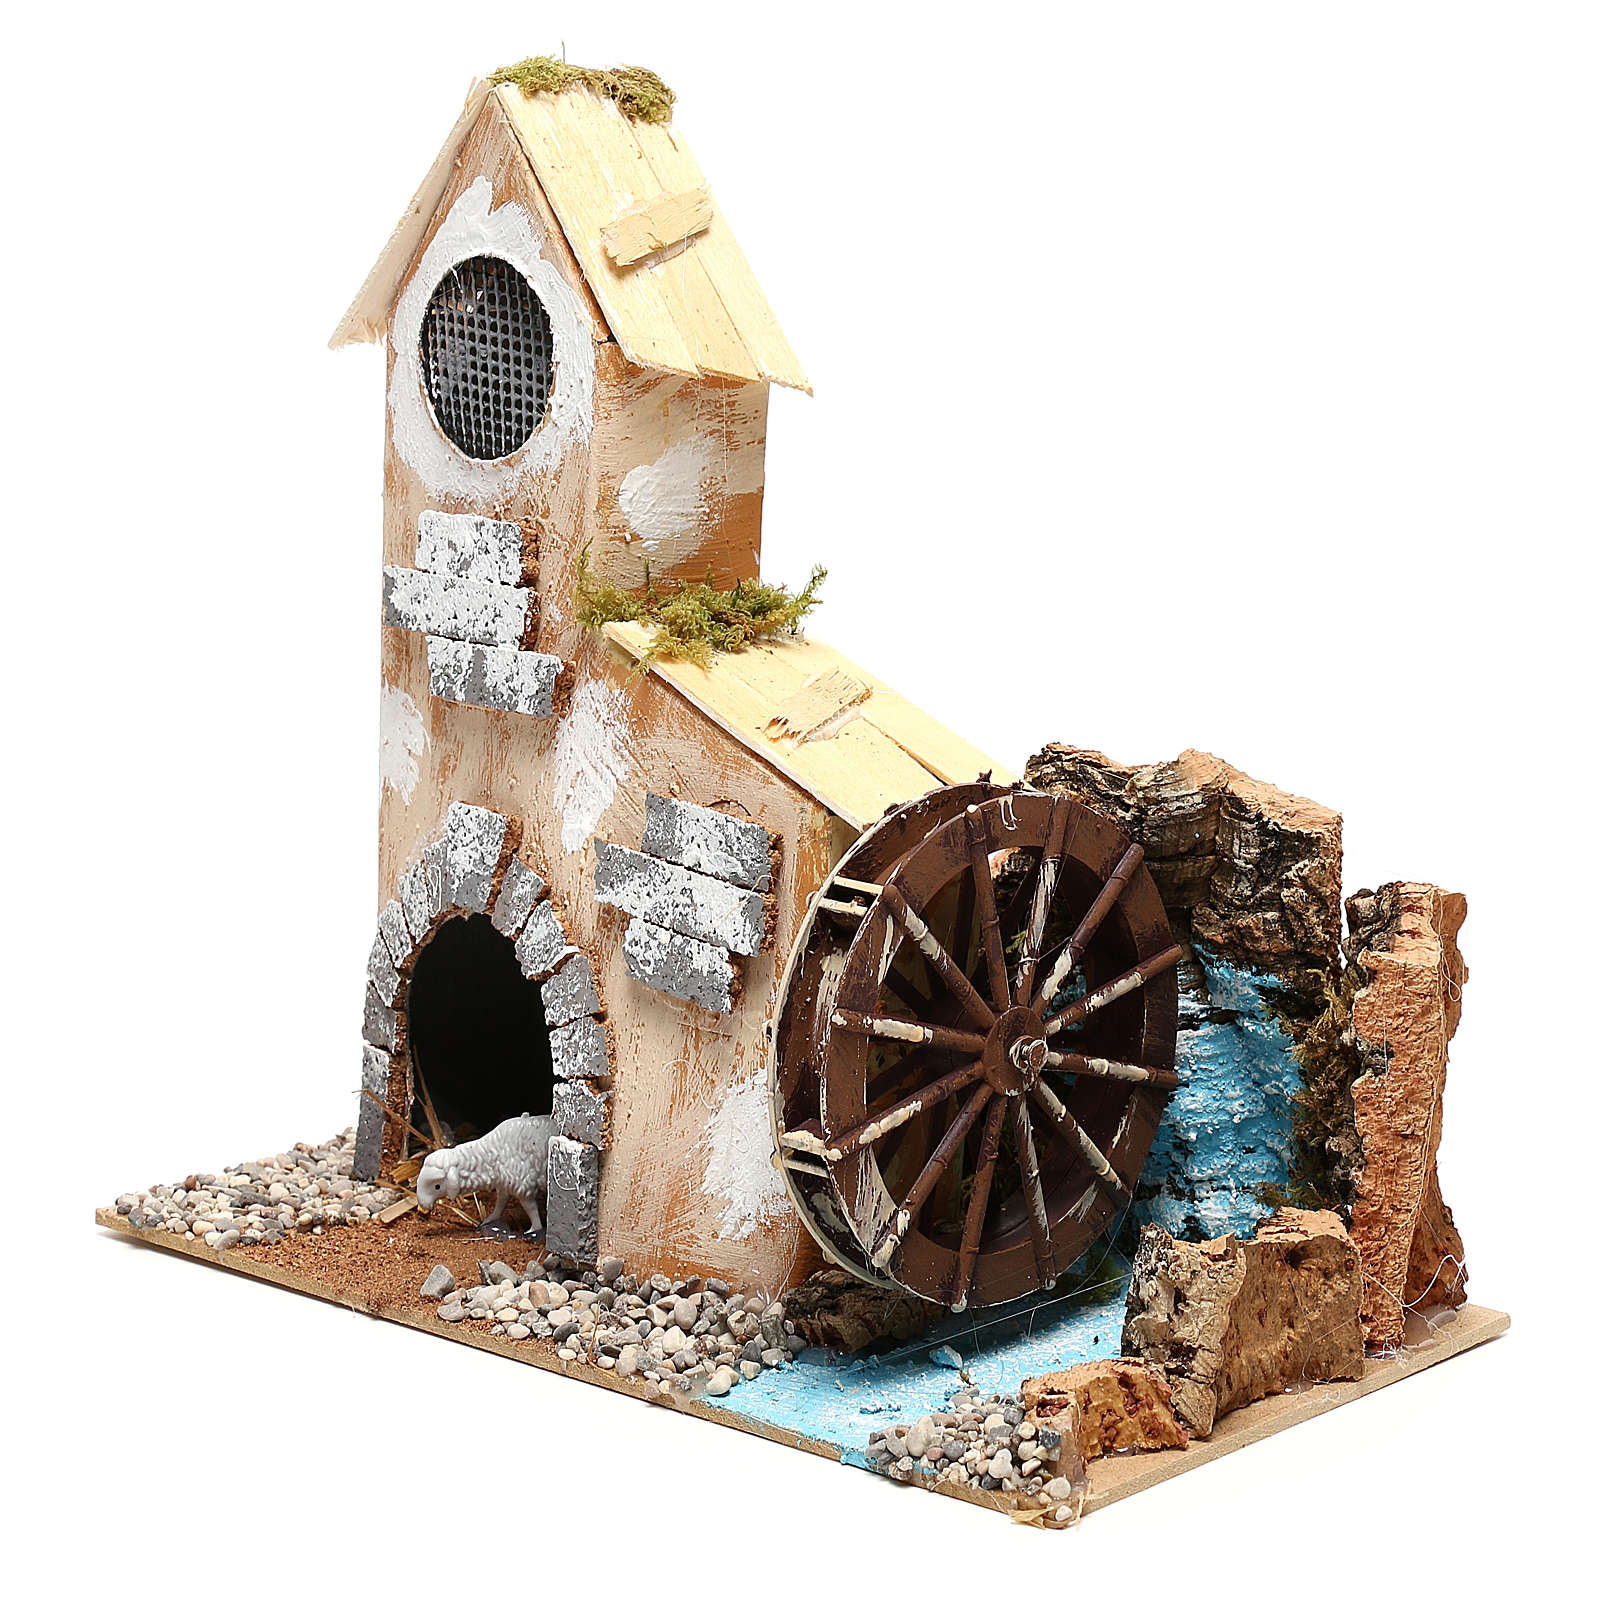 Cottage for Nativity scene with fake water mill for Nativity scene 8-10 cm 4